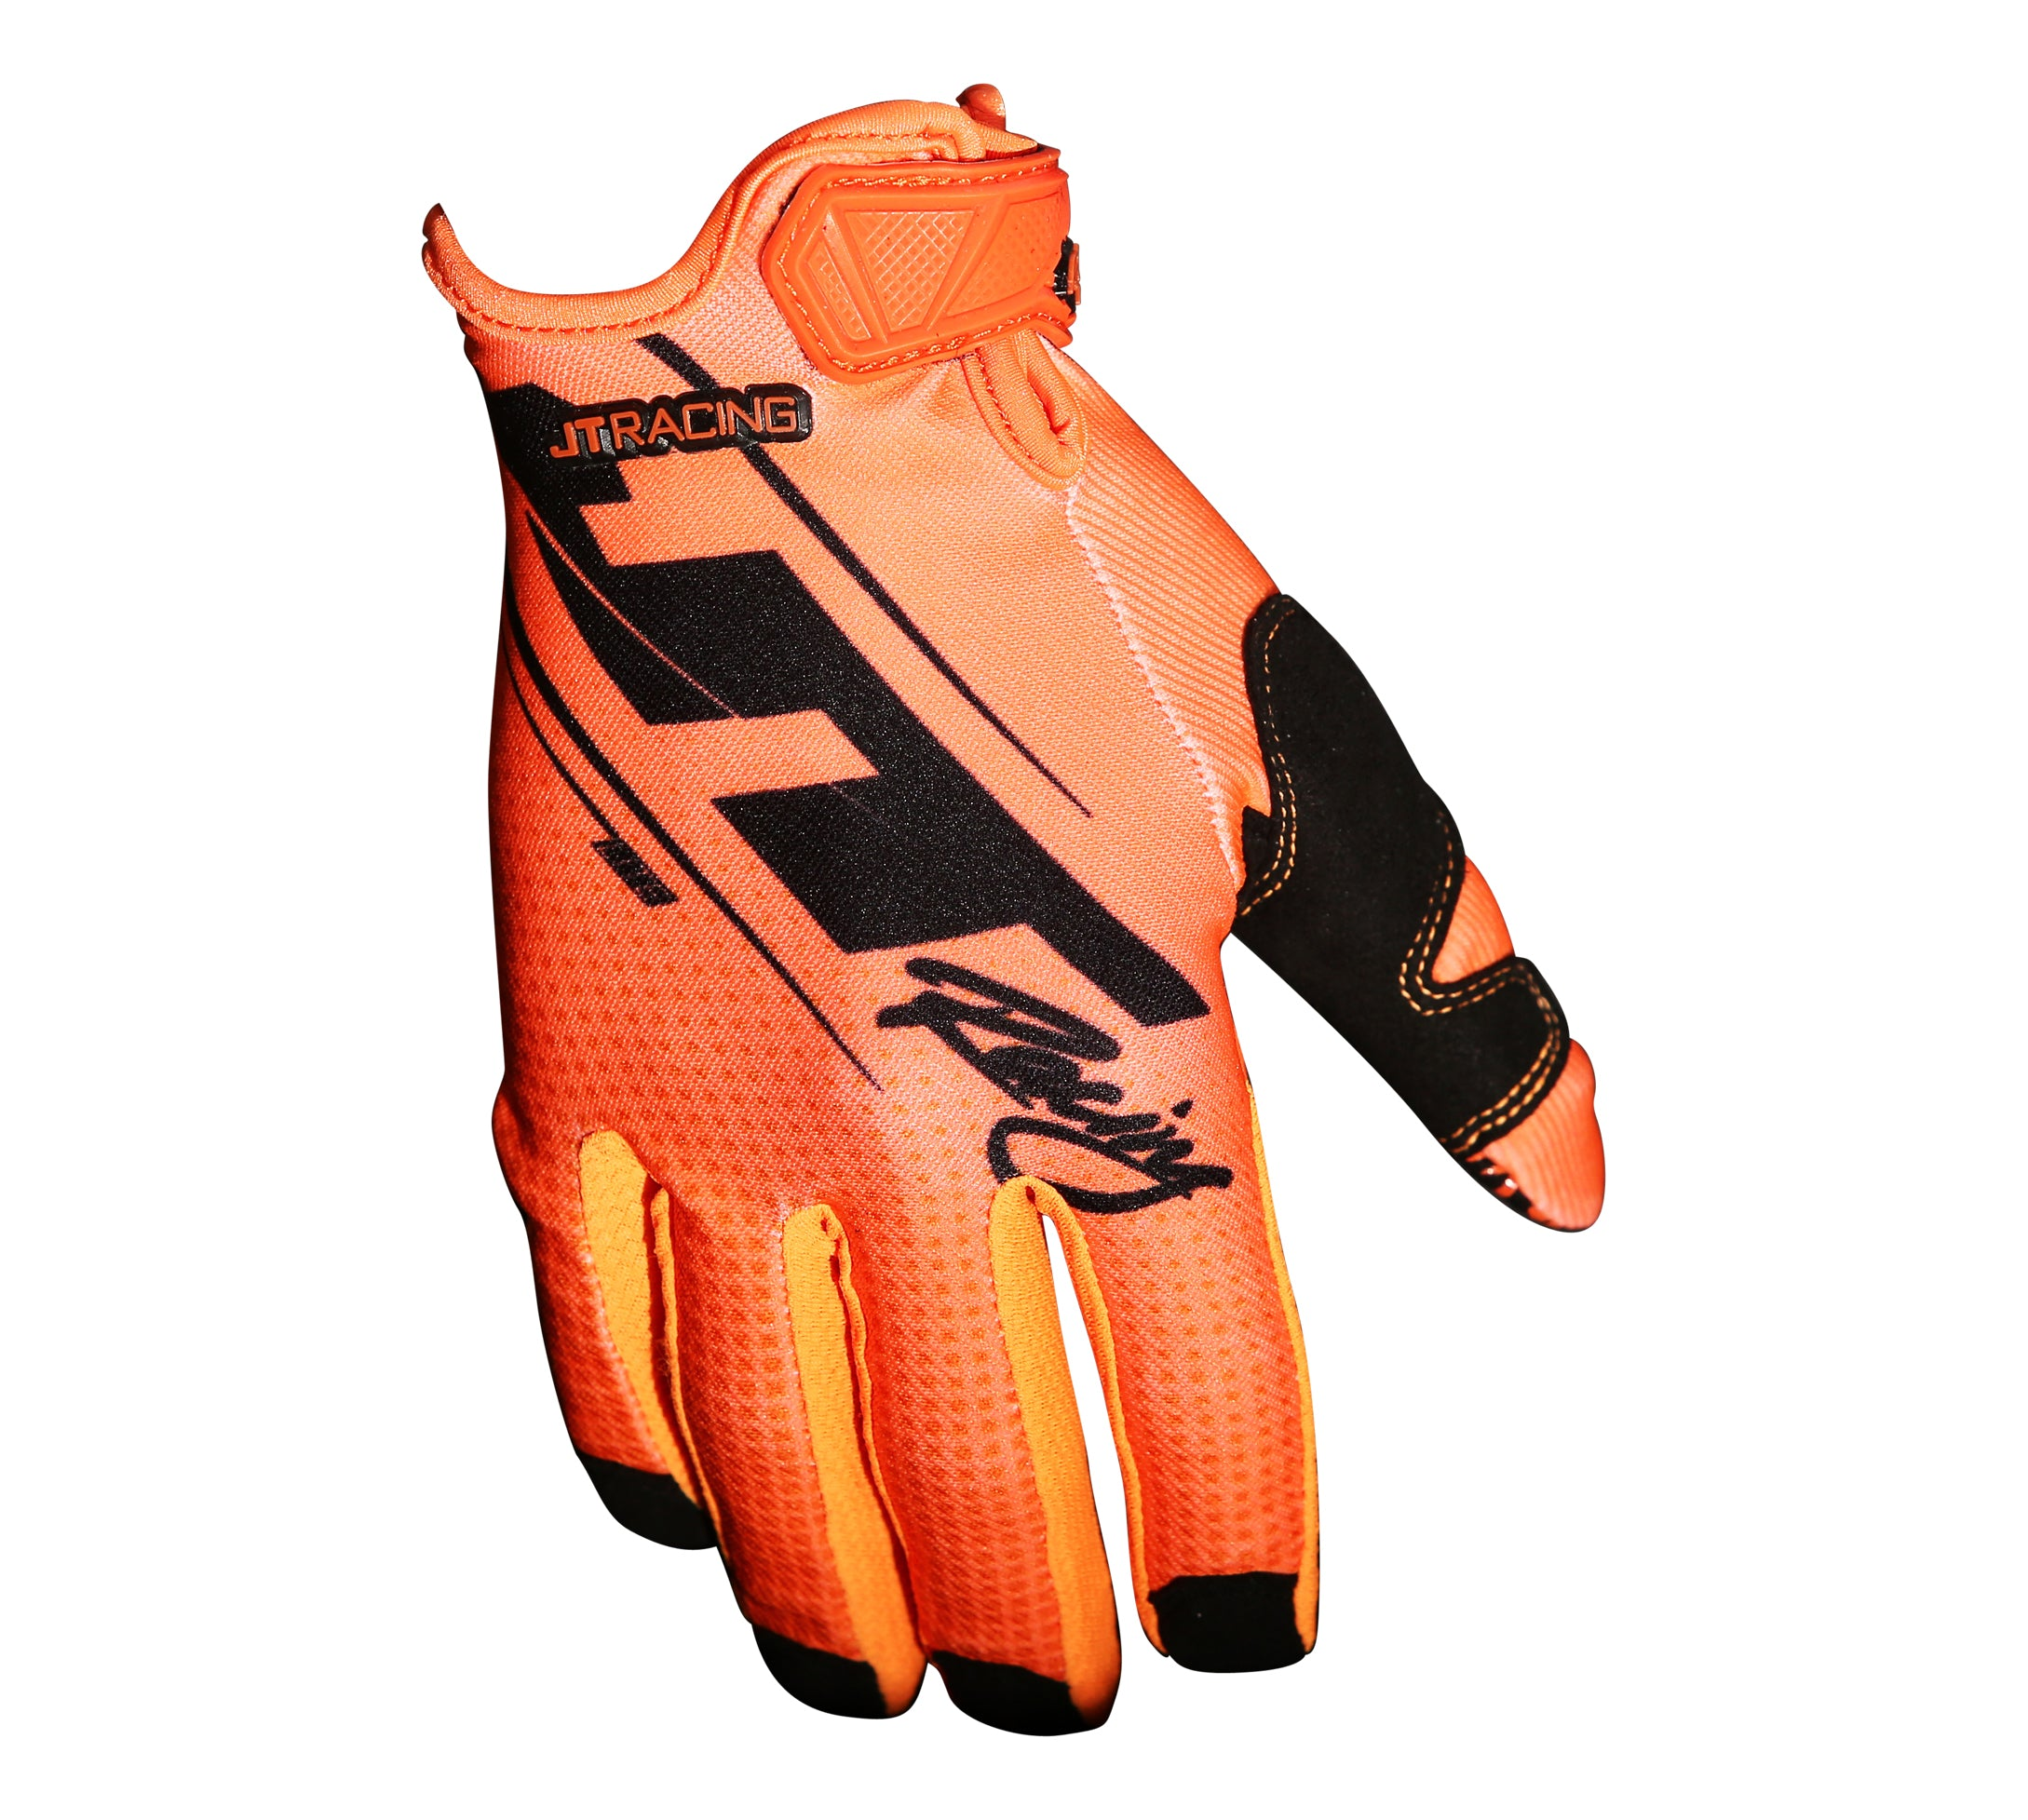 JT Racing USA- Lite16-Slasher Gloves Orange/Black